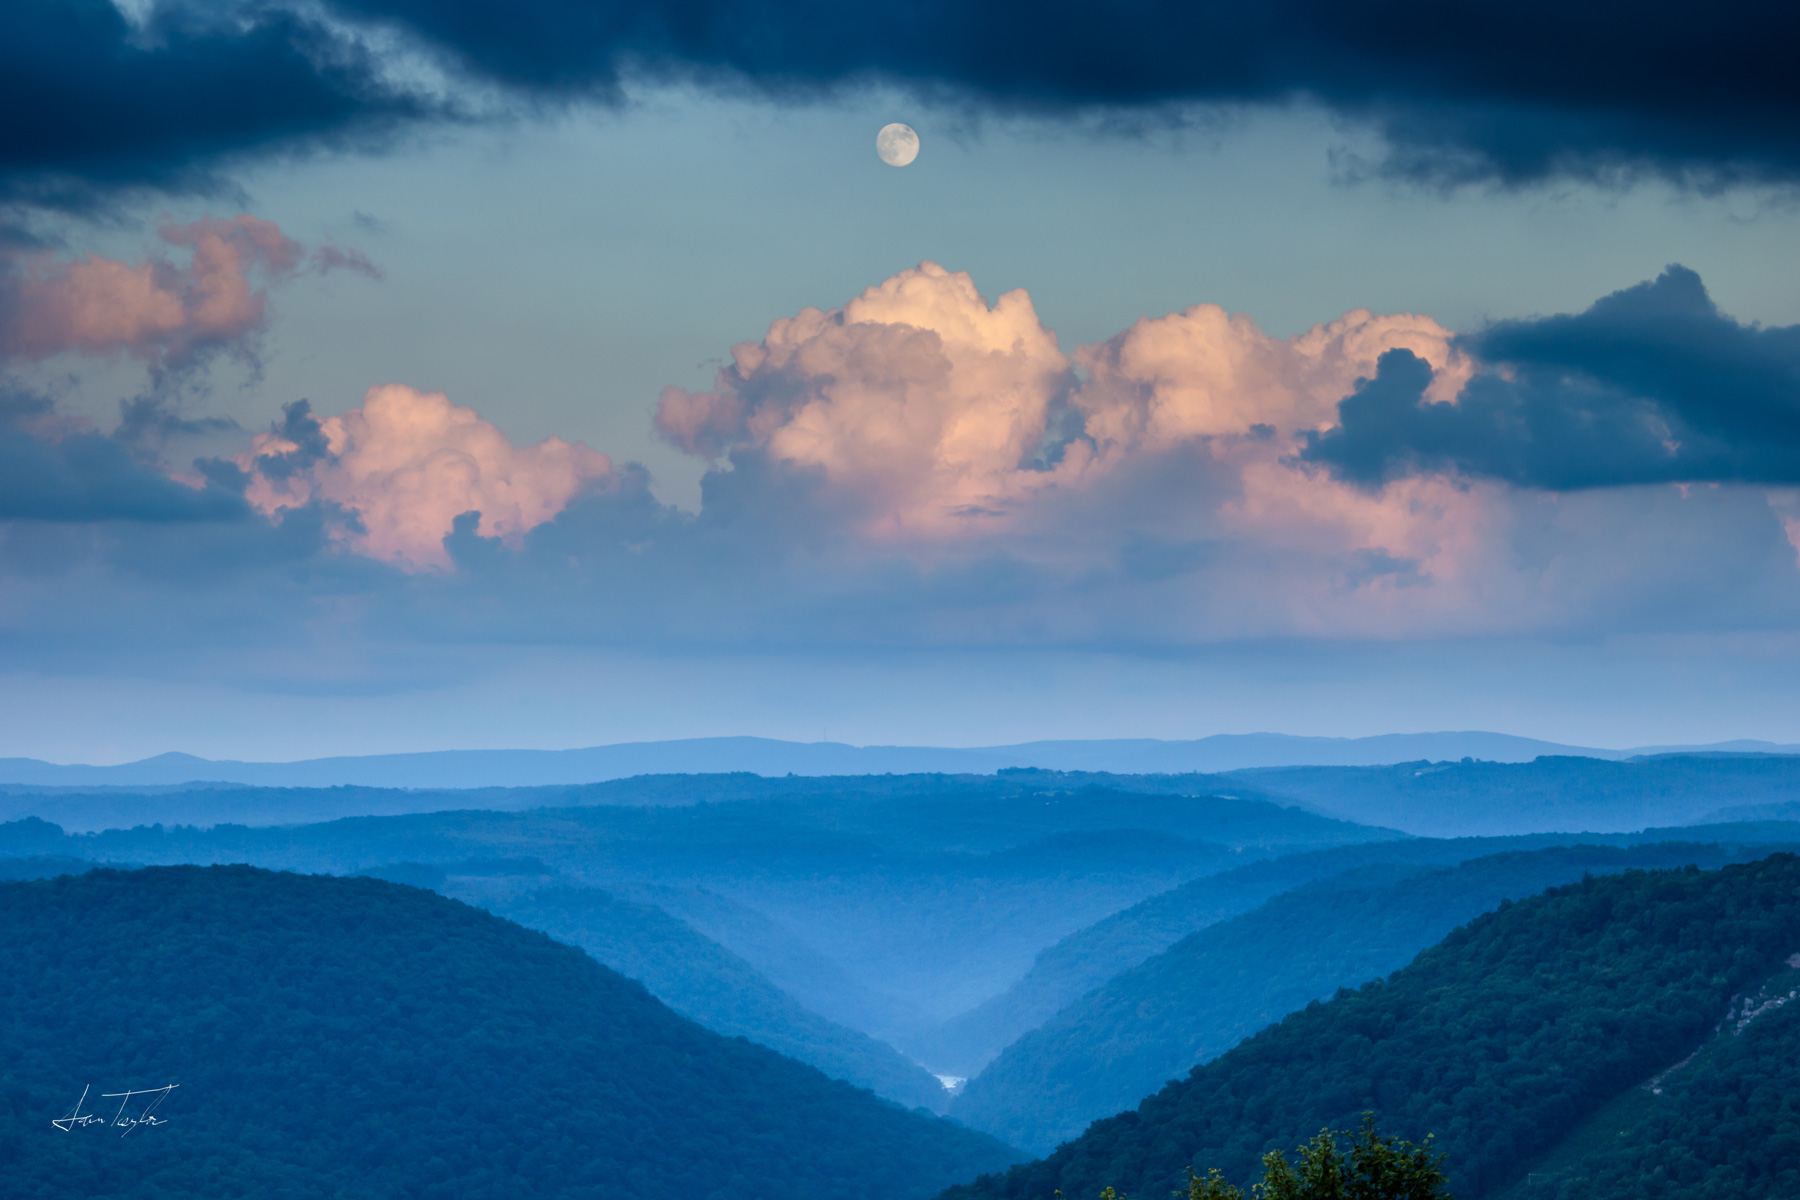 Cheat View Overlook - West Virginia